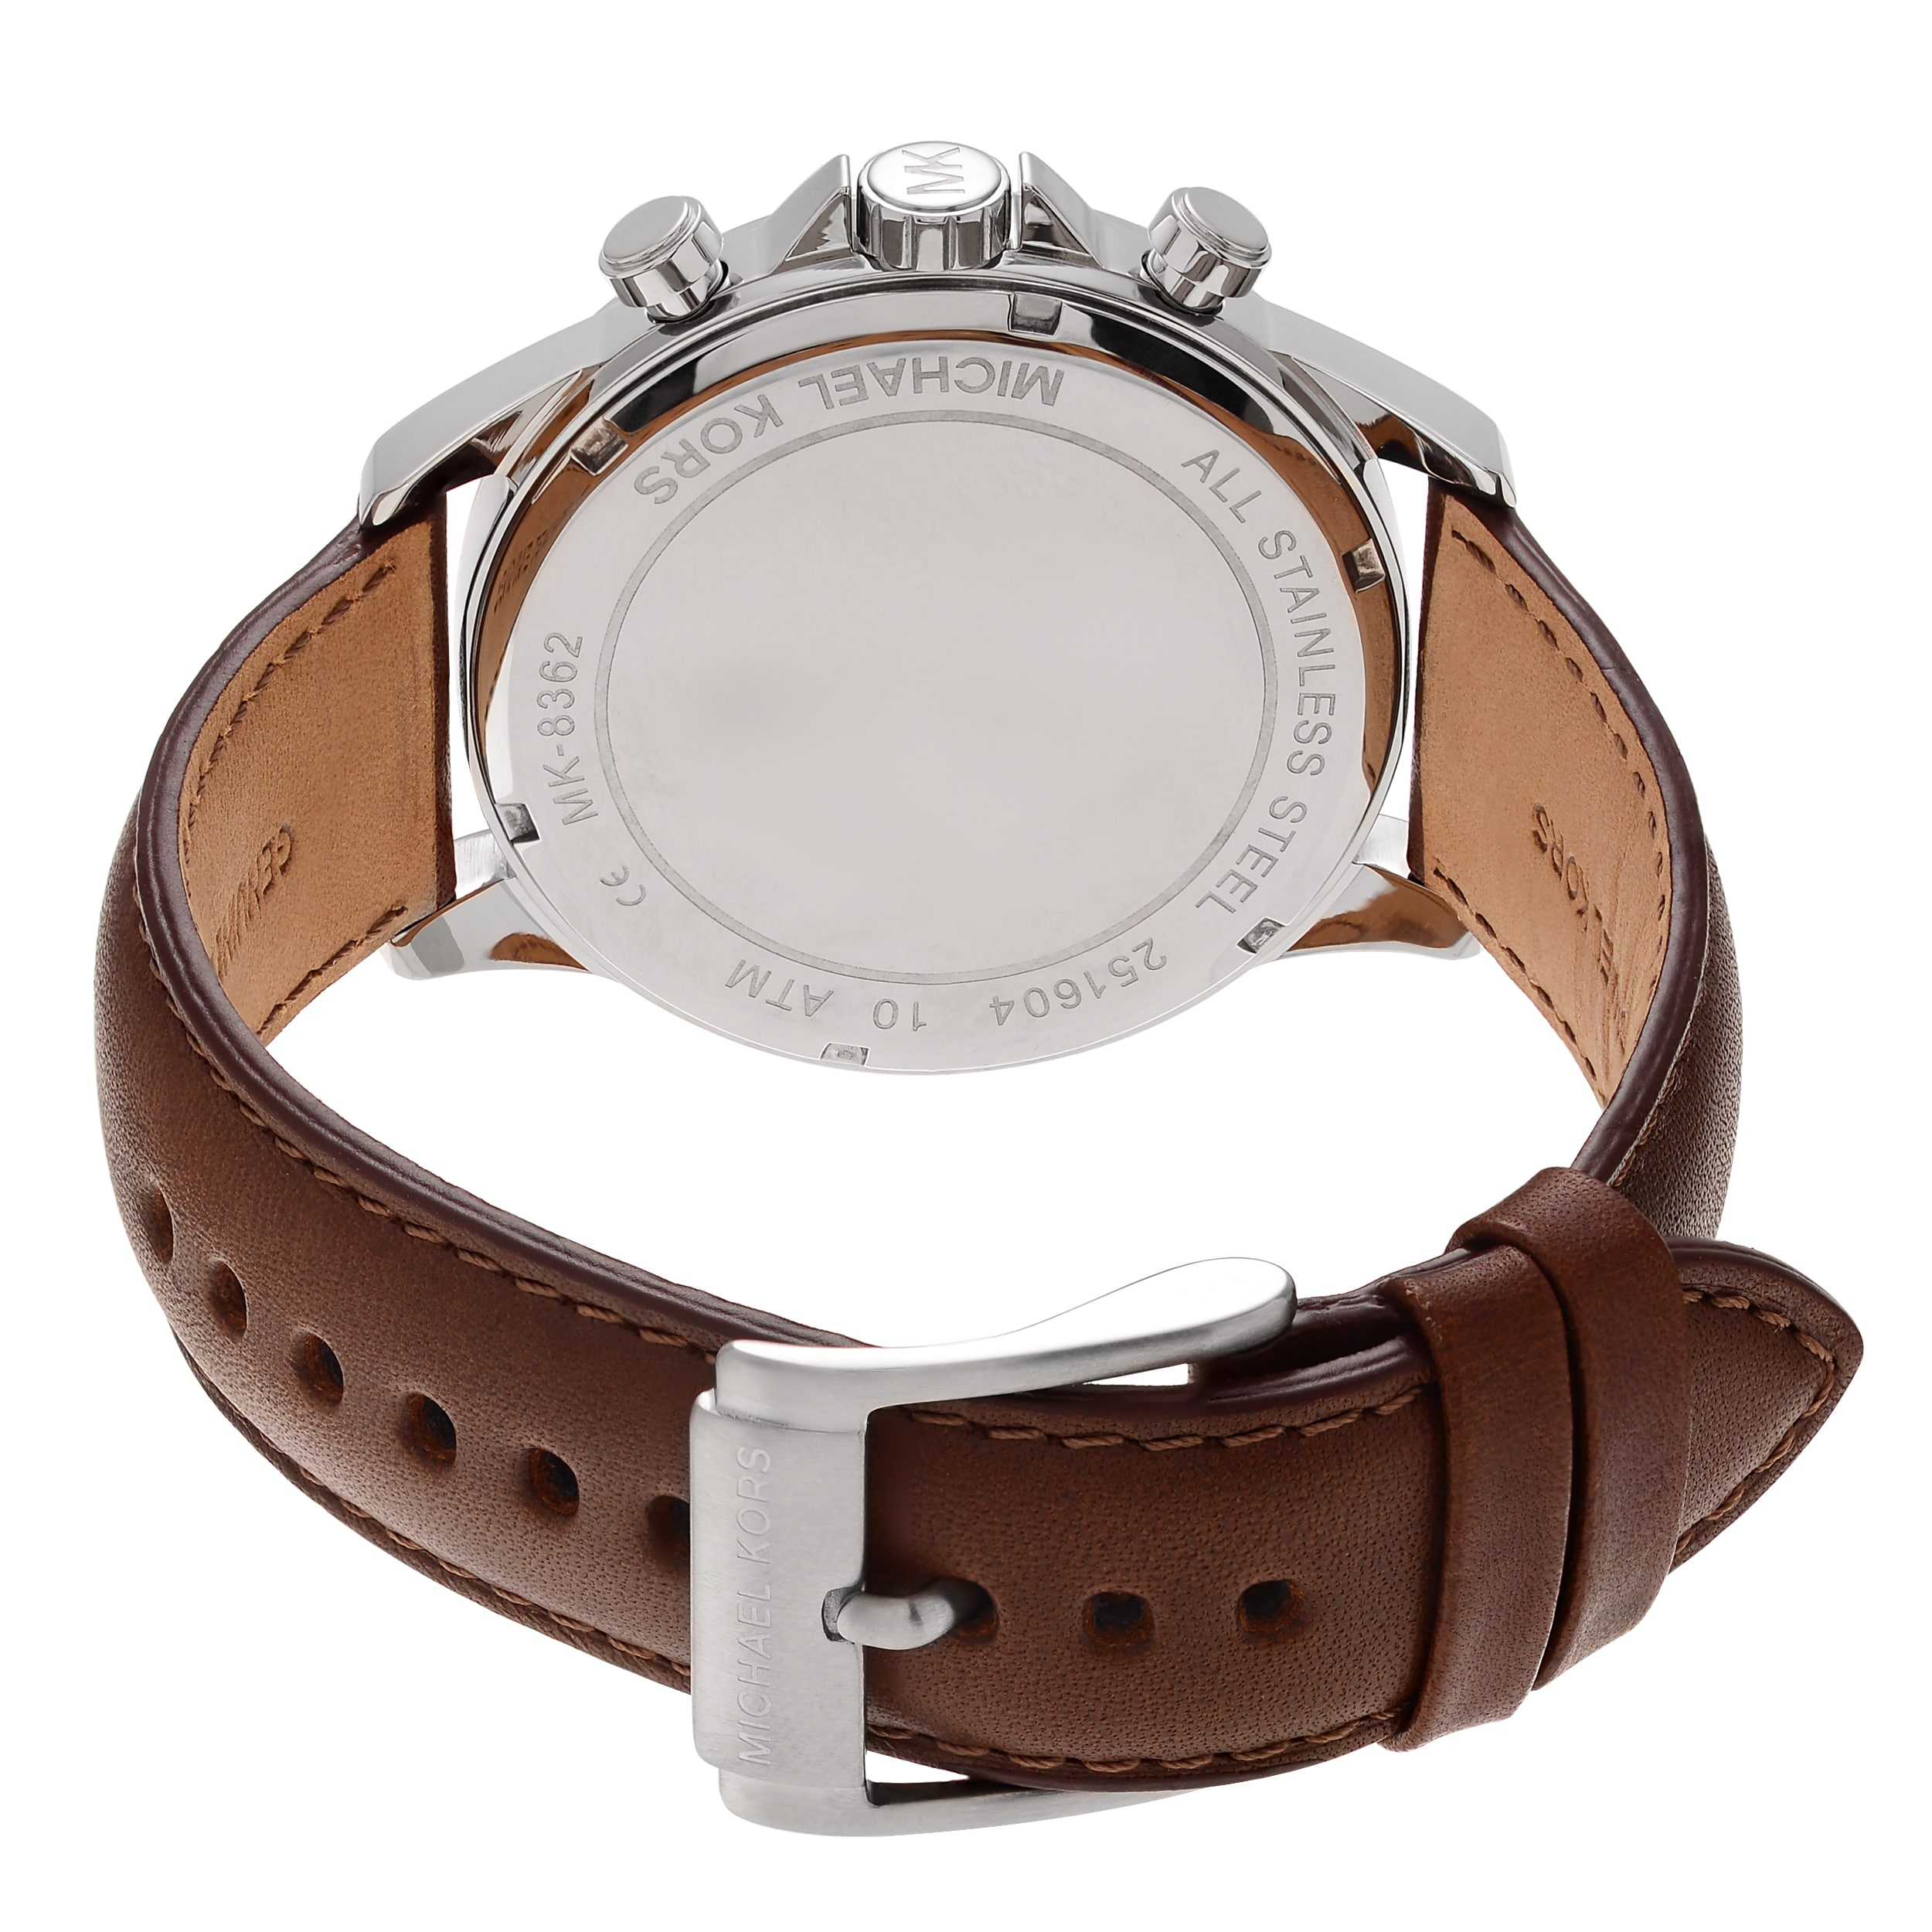 ff39c4695900 Shop Michael Kors Men s MK8362  Gage  Chronograph Brown Leather Watch -  Blue - Free Shipping Today - Overstock - 10283478